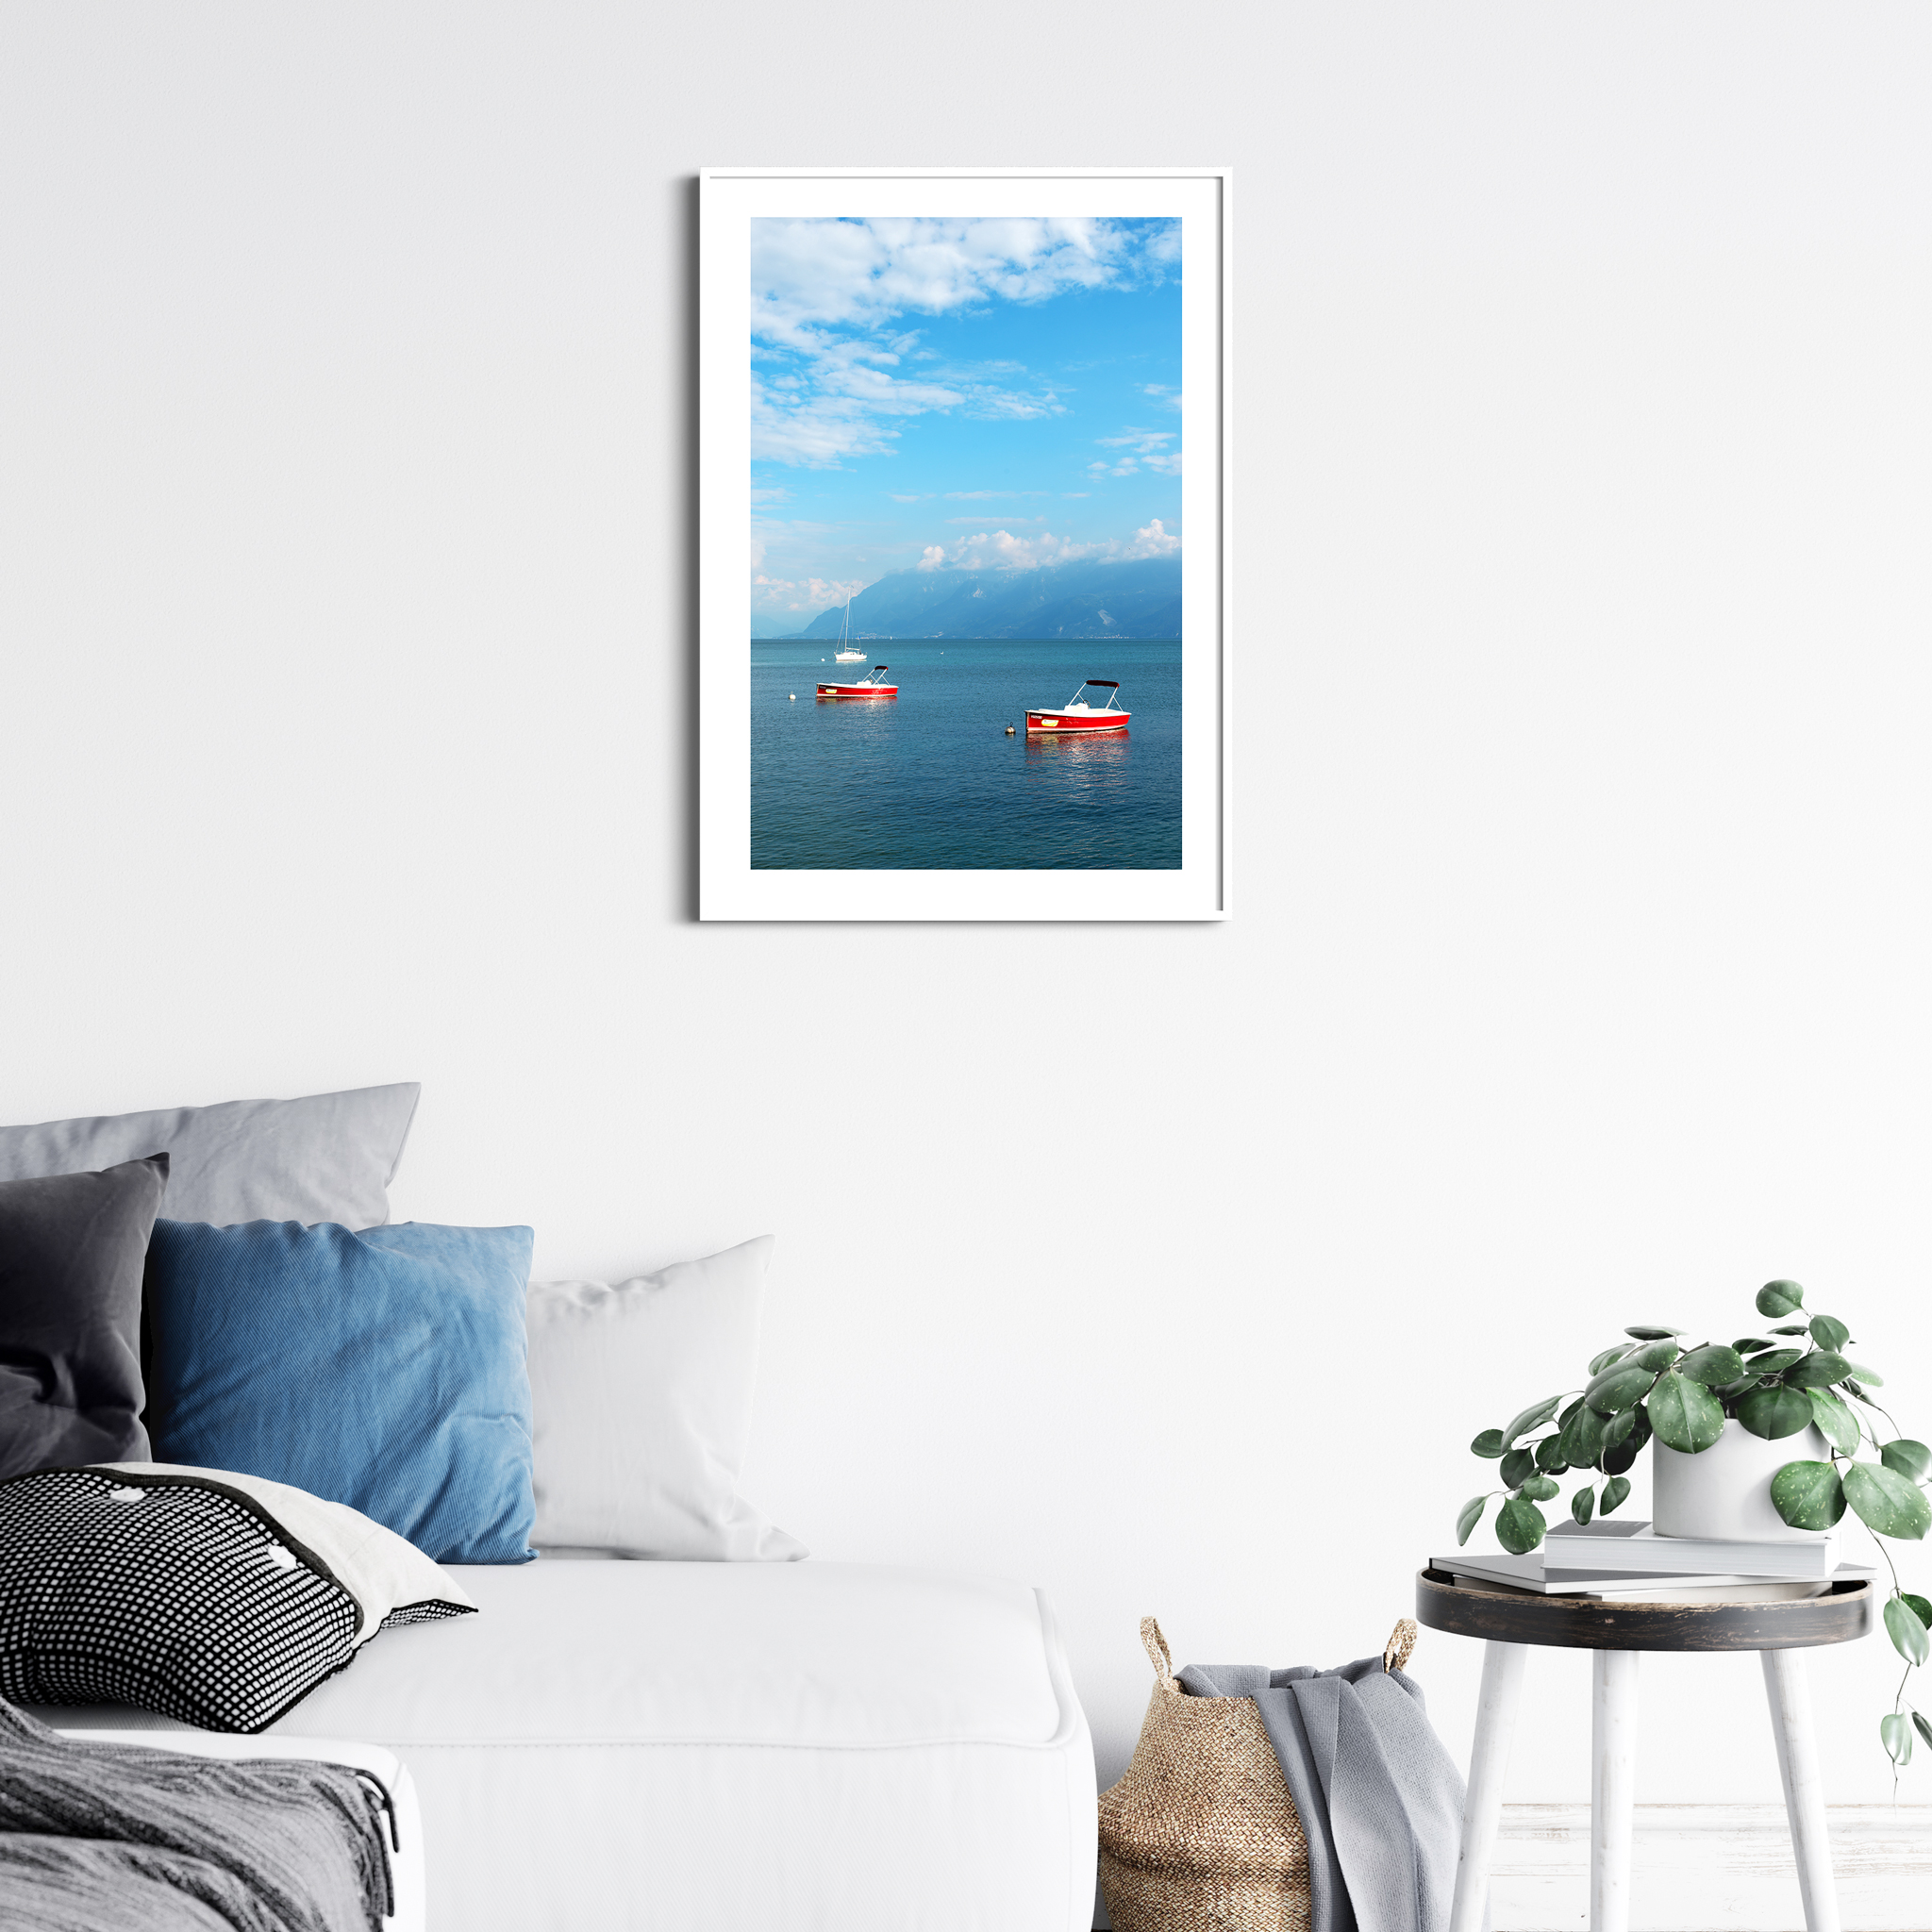 Boats on the Lake Leman - color print with border in white frame - interior photography